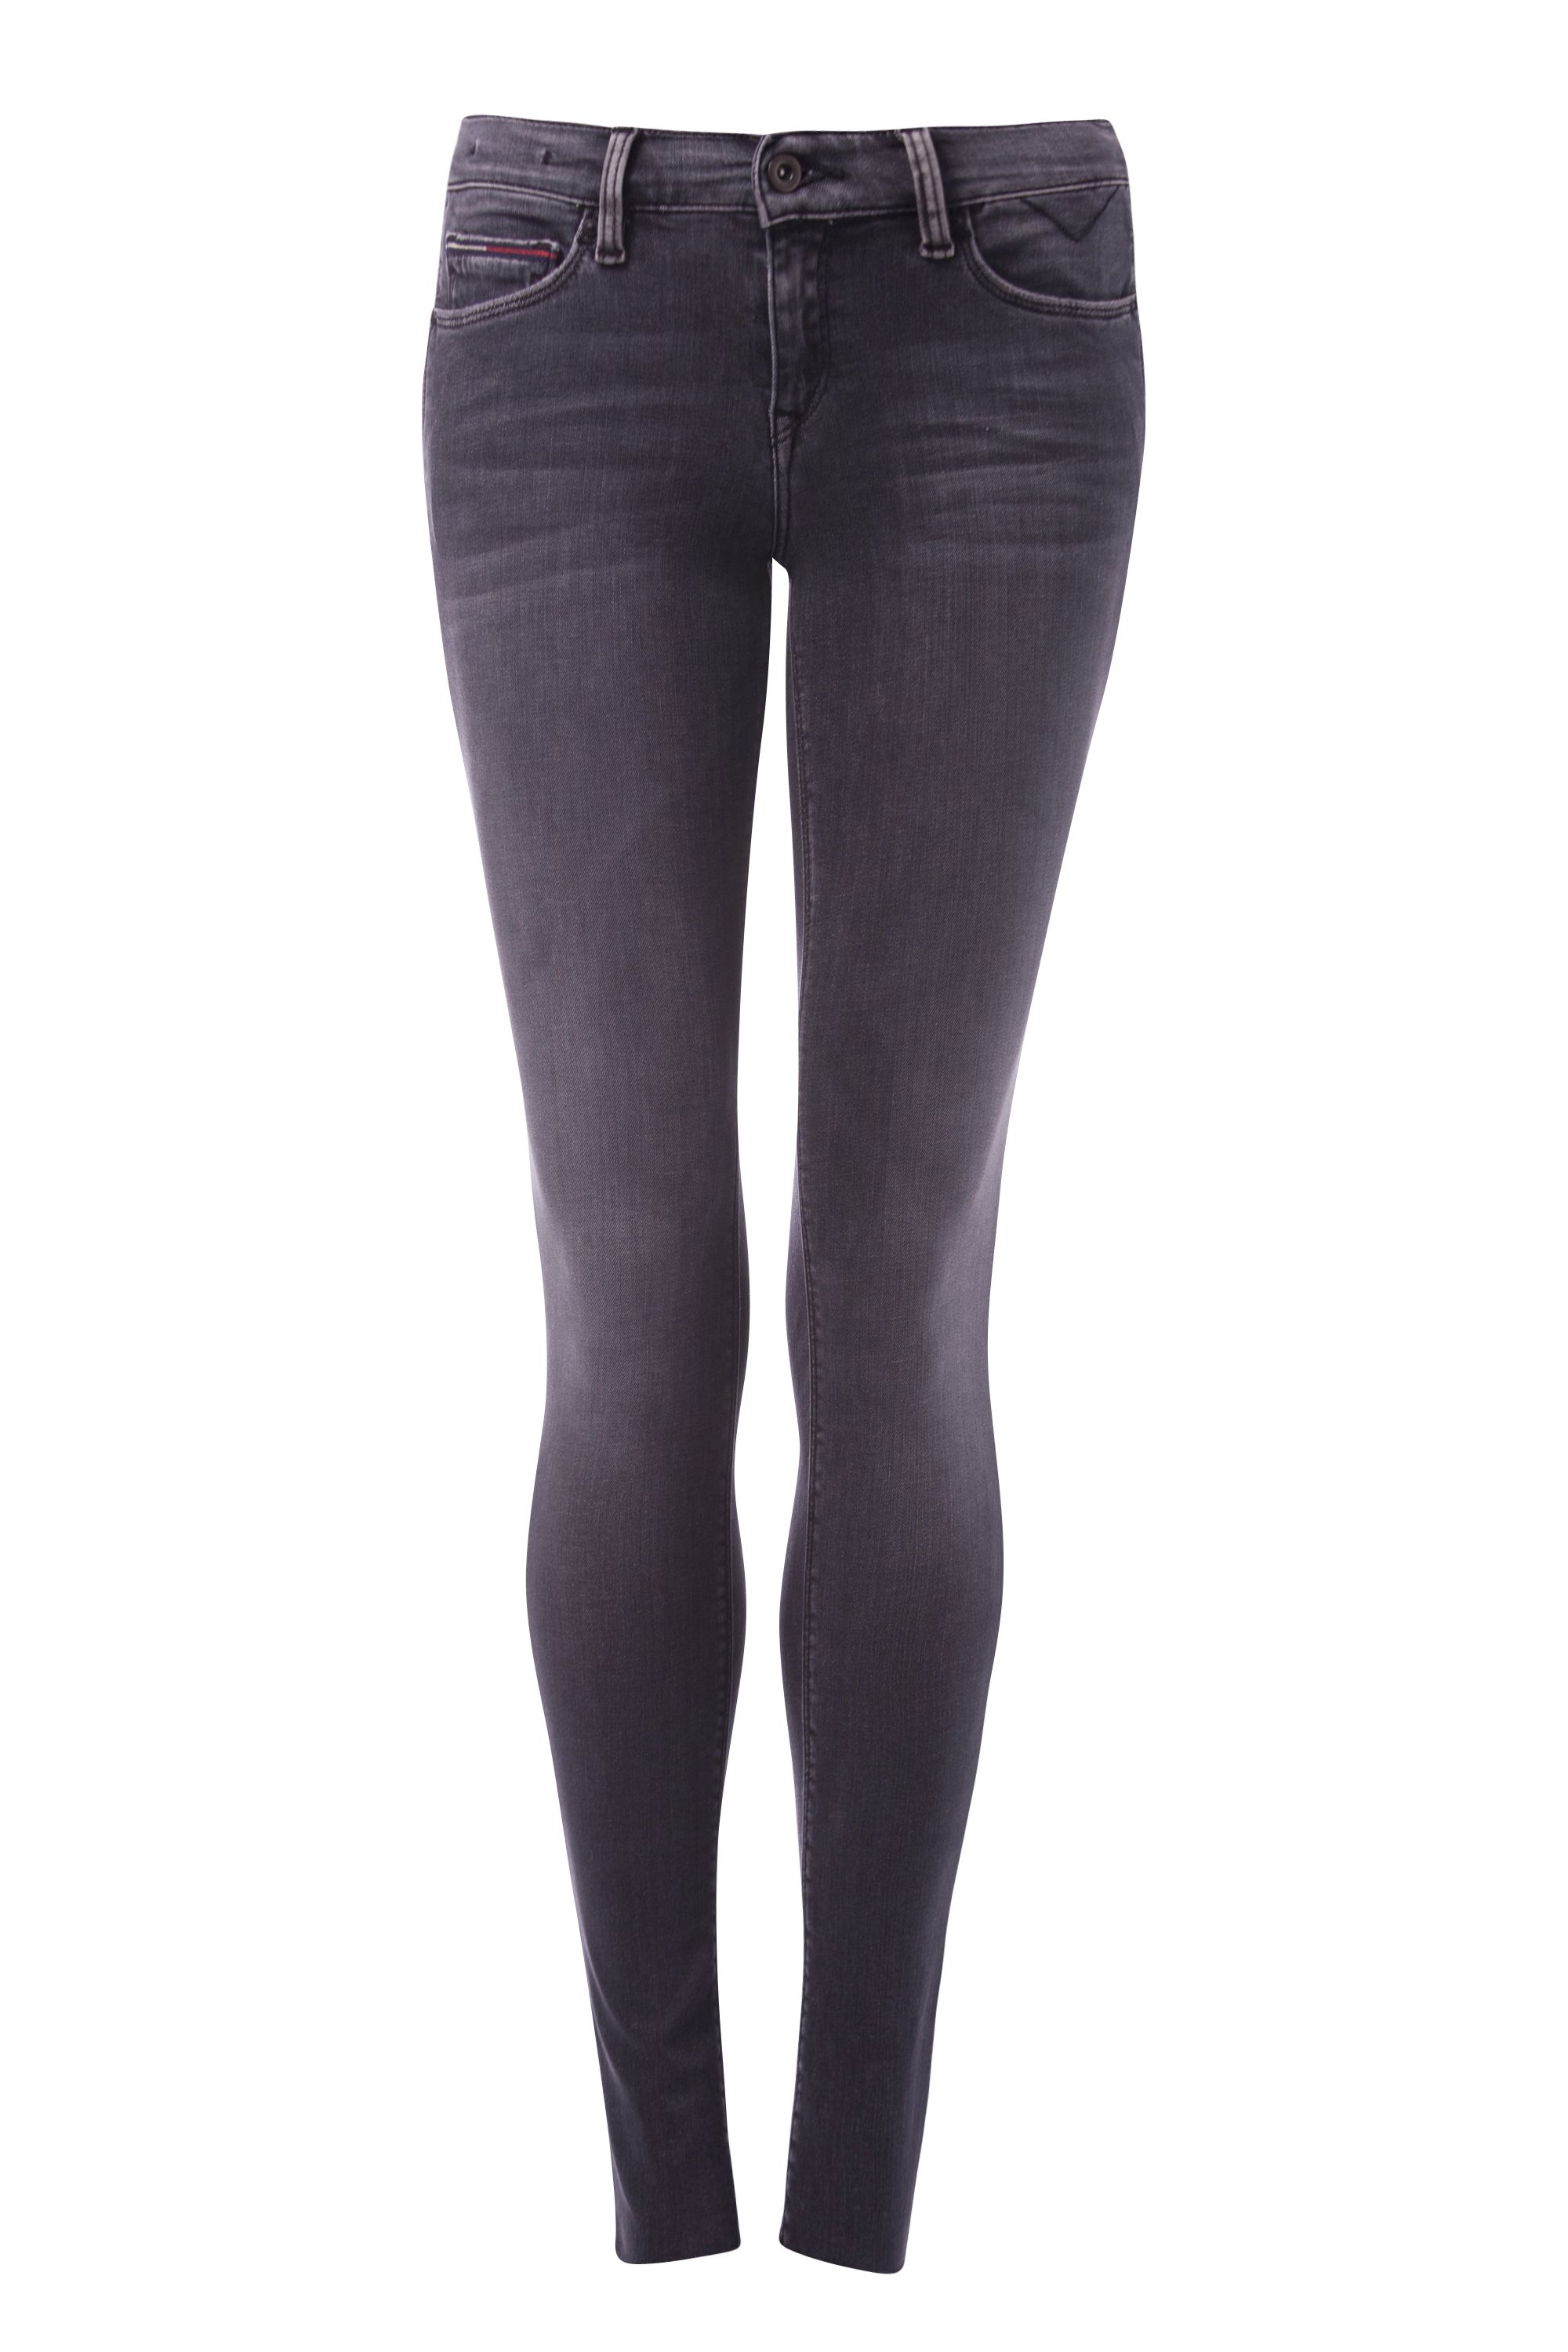 Tommy Hilfiger Mid Rise Skinny Nora Jeans Grey